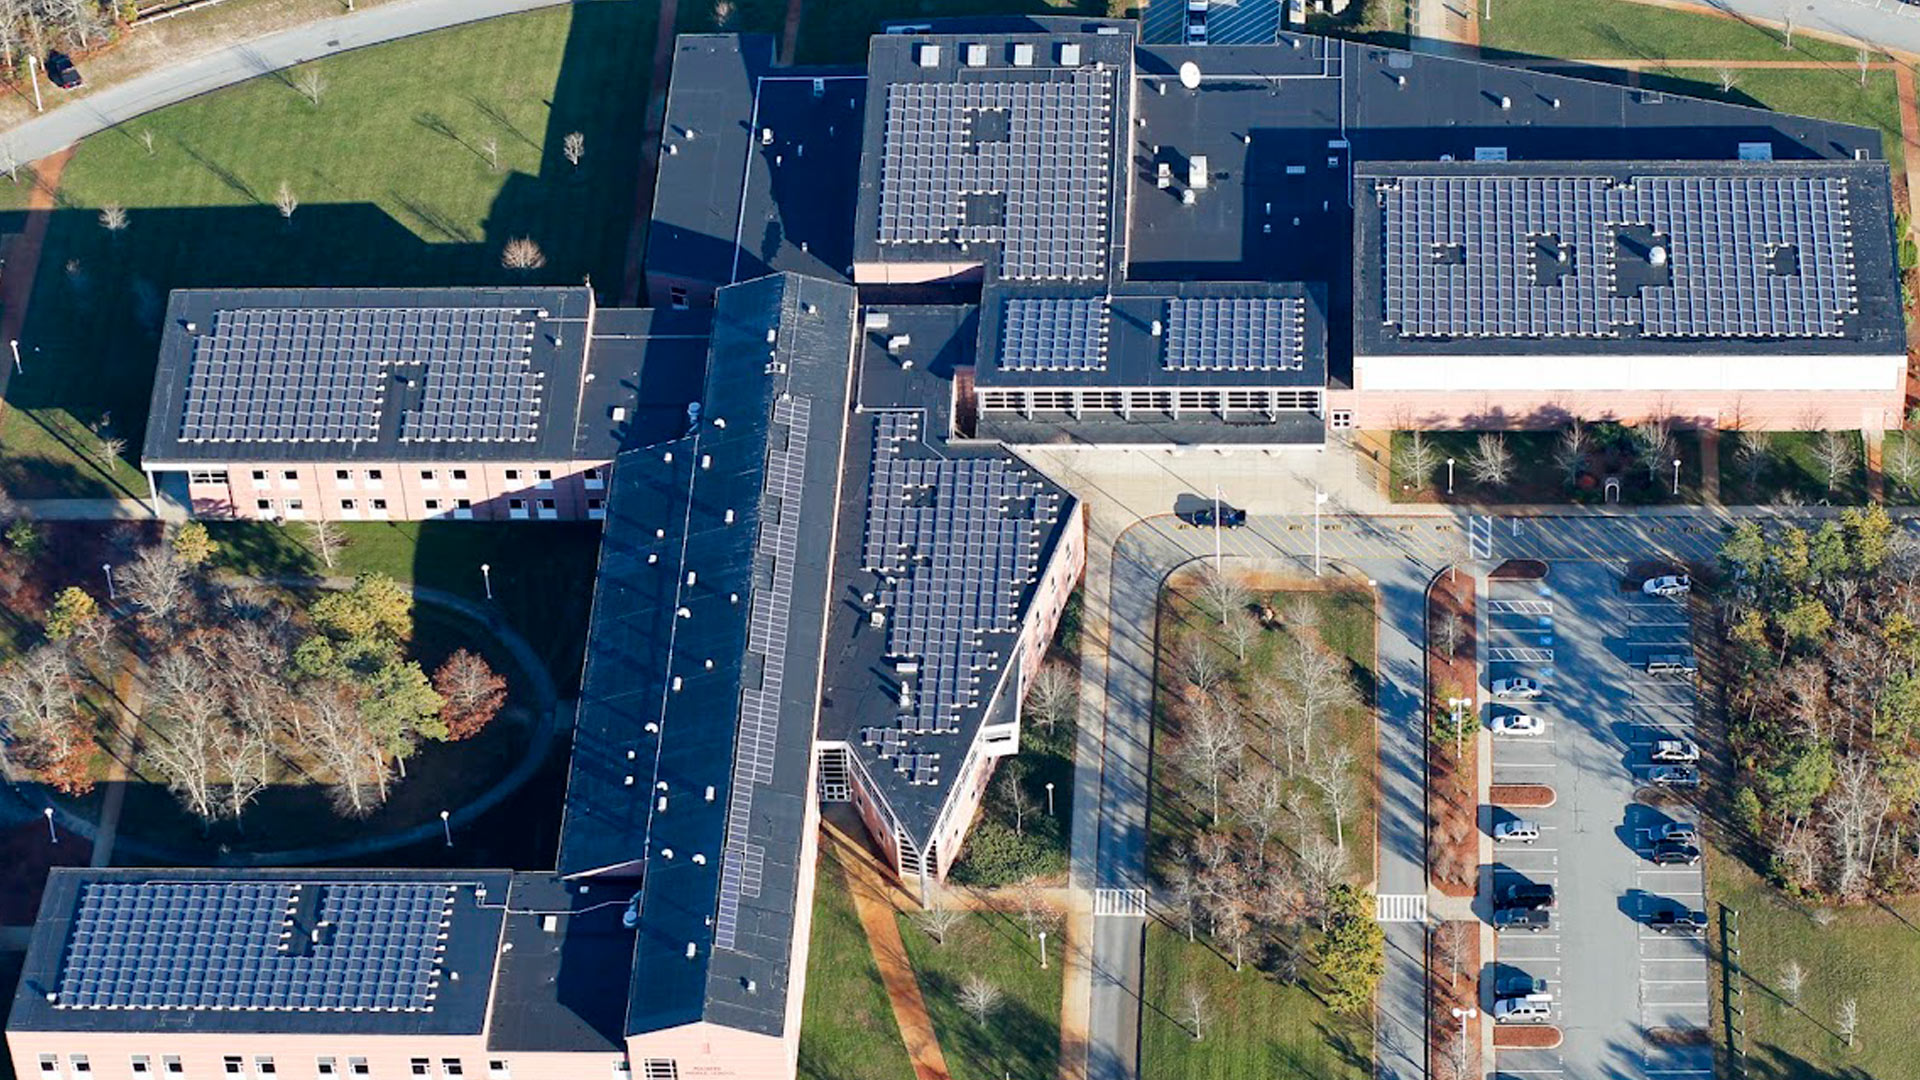 aerial view of solar panels on build tops